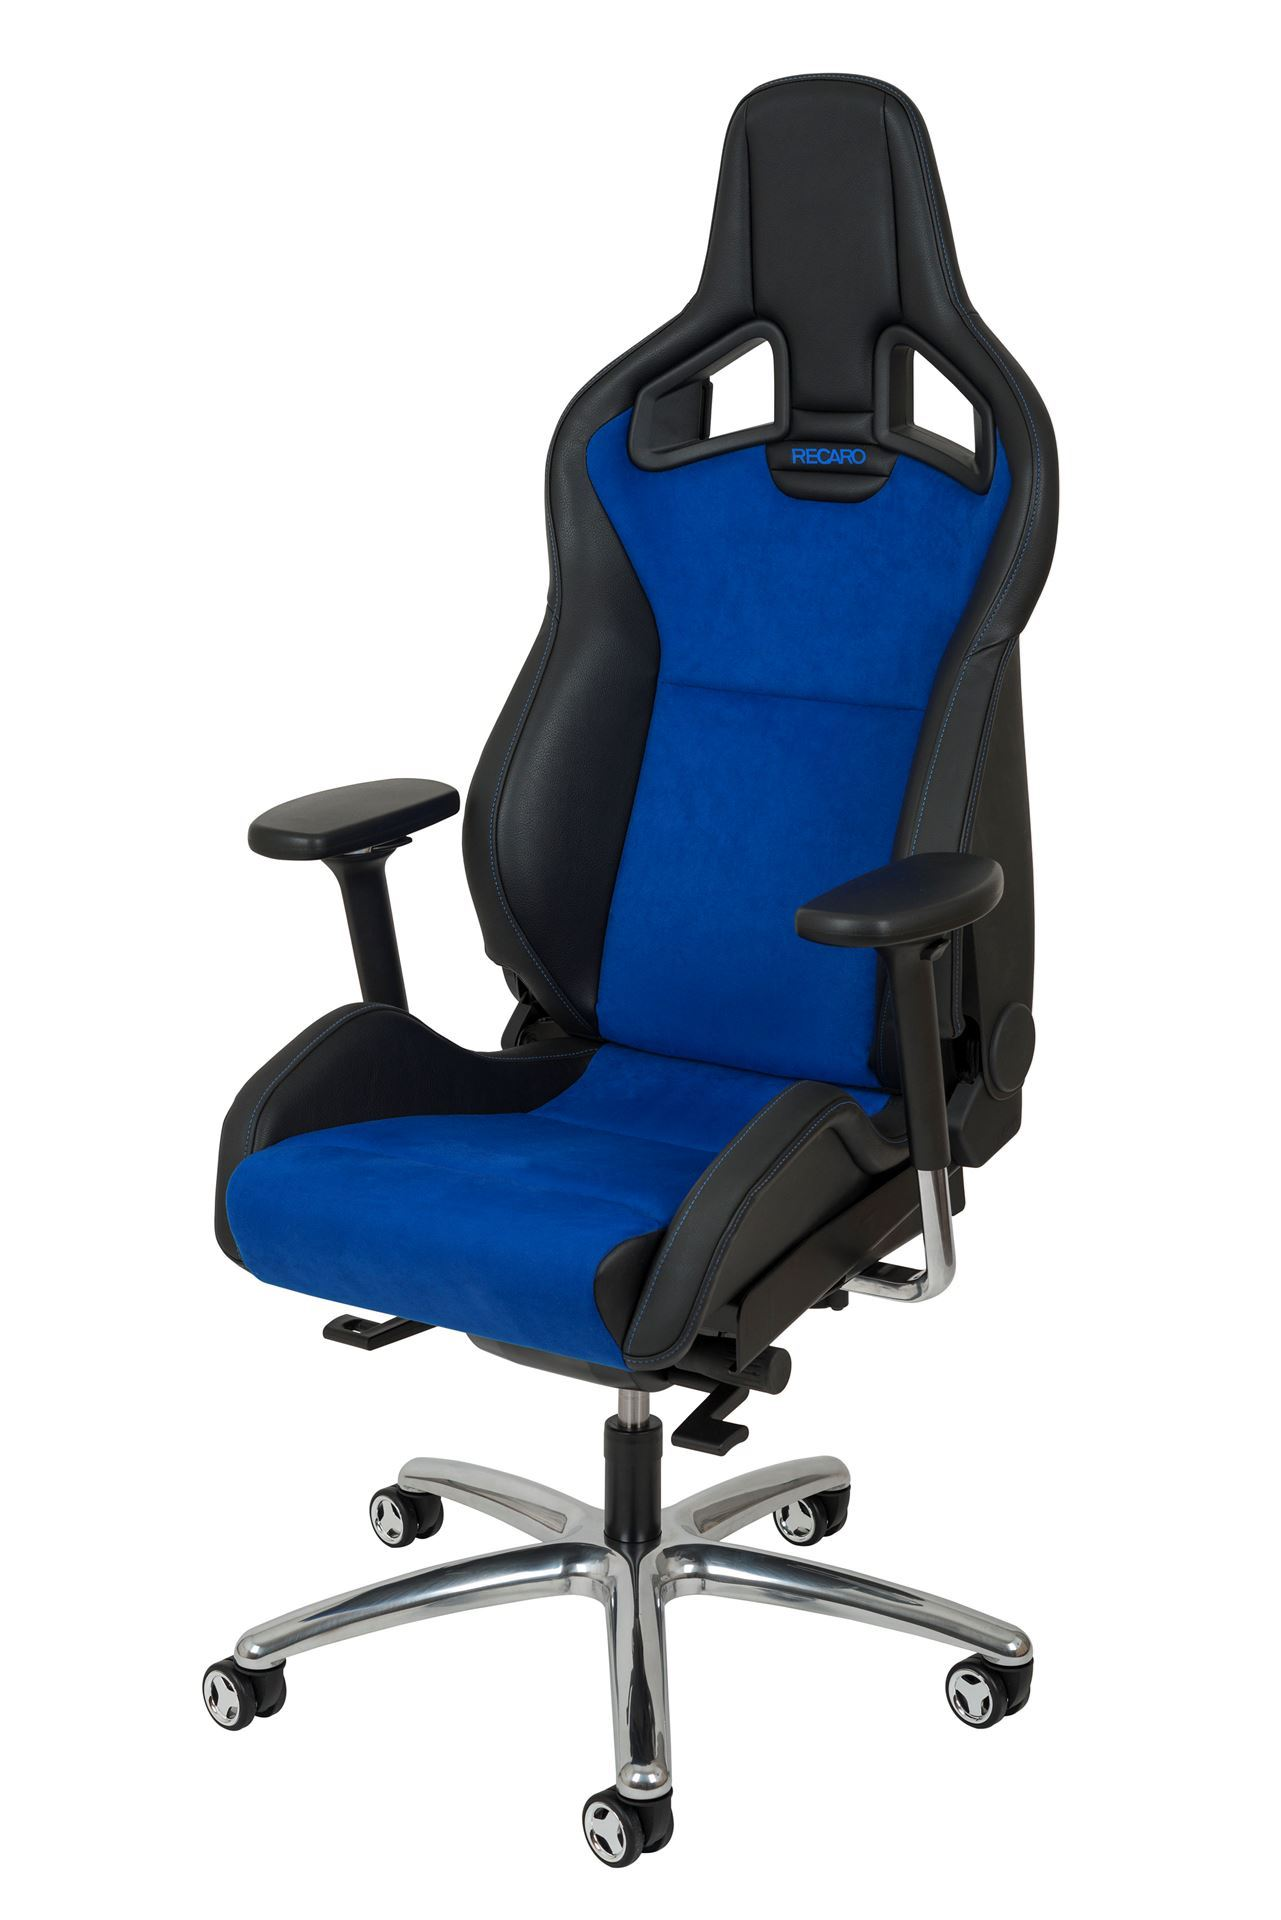 Capital Seating And Vision Seating Vision And Accessories For Hardworking Environments Recaro Sportster Cs Office Chair